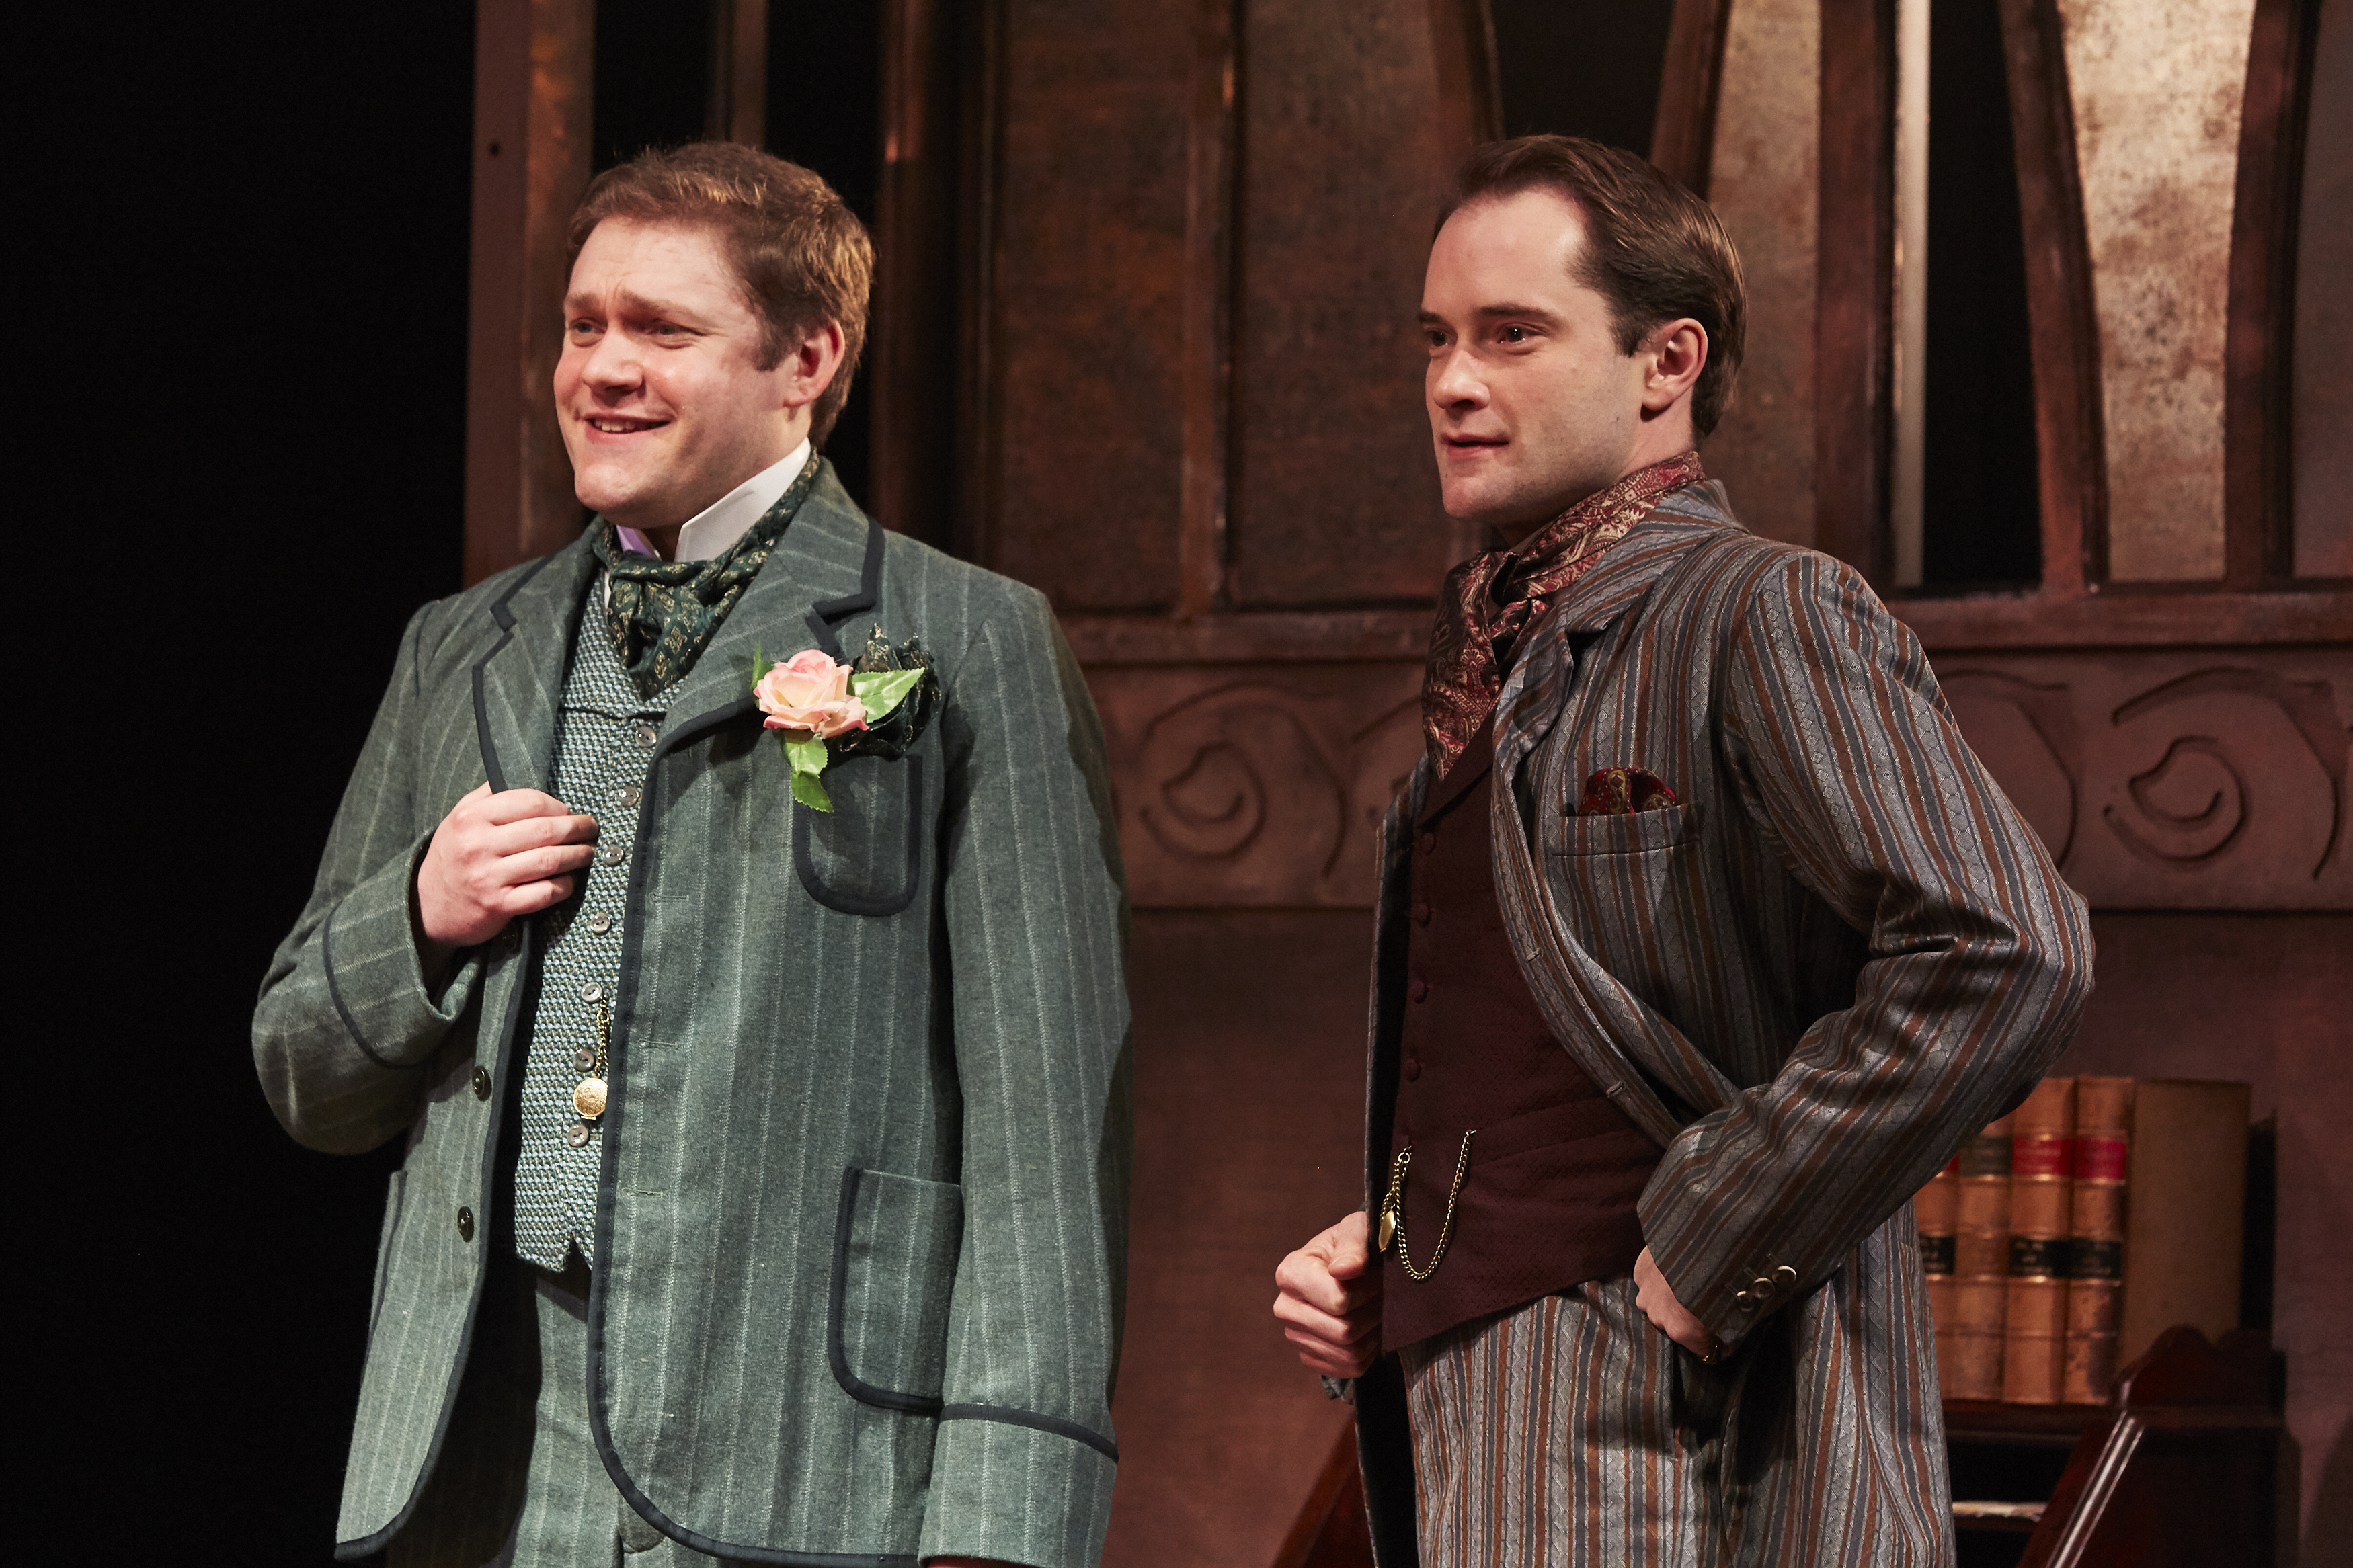 LtoR Thomas Howes as Algernon & Peter Sandys-Clarke as Jack in THE IMPORTANCE OF BEING EARNEST, credit The Other Richard